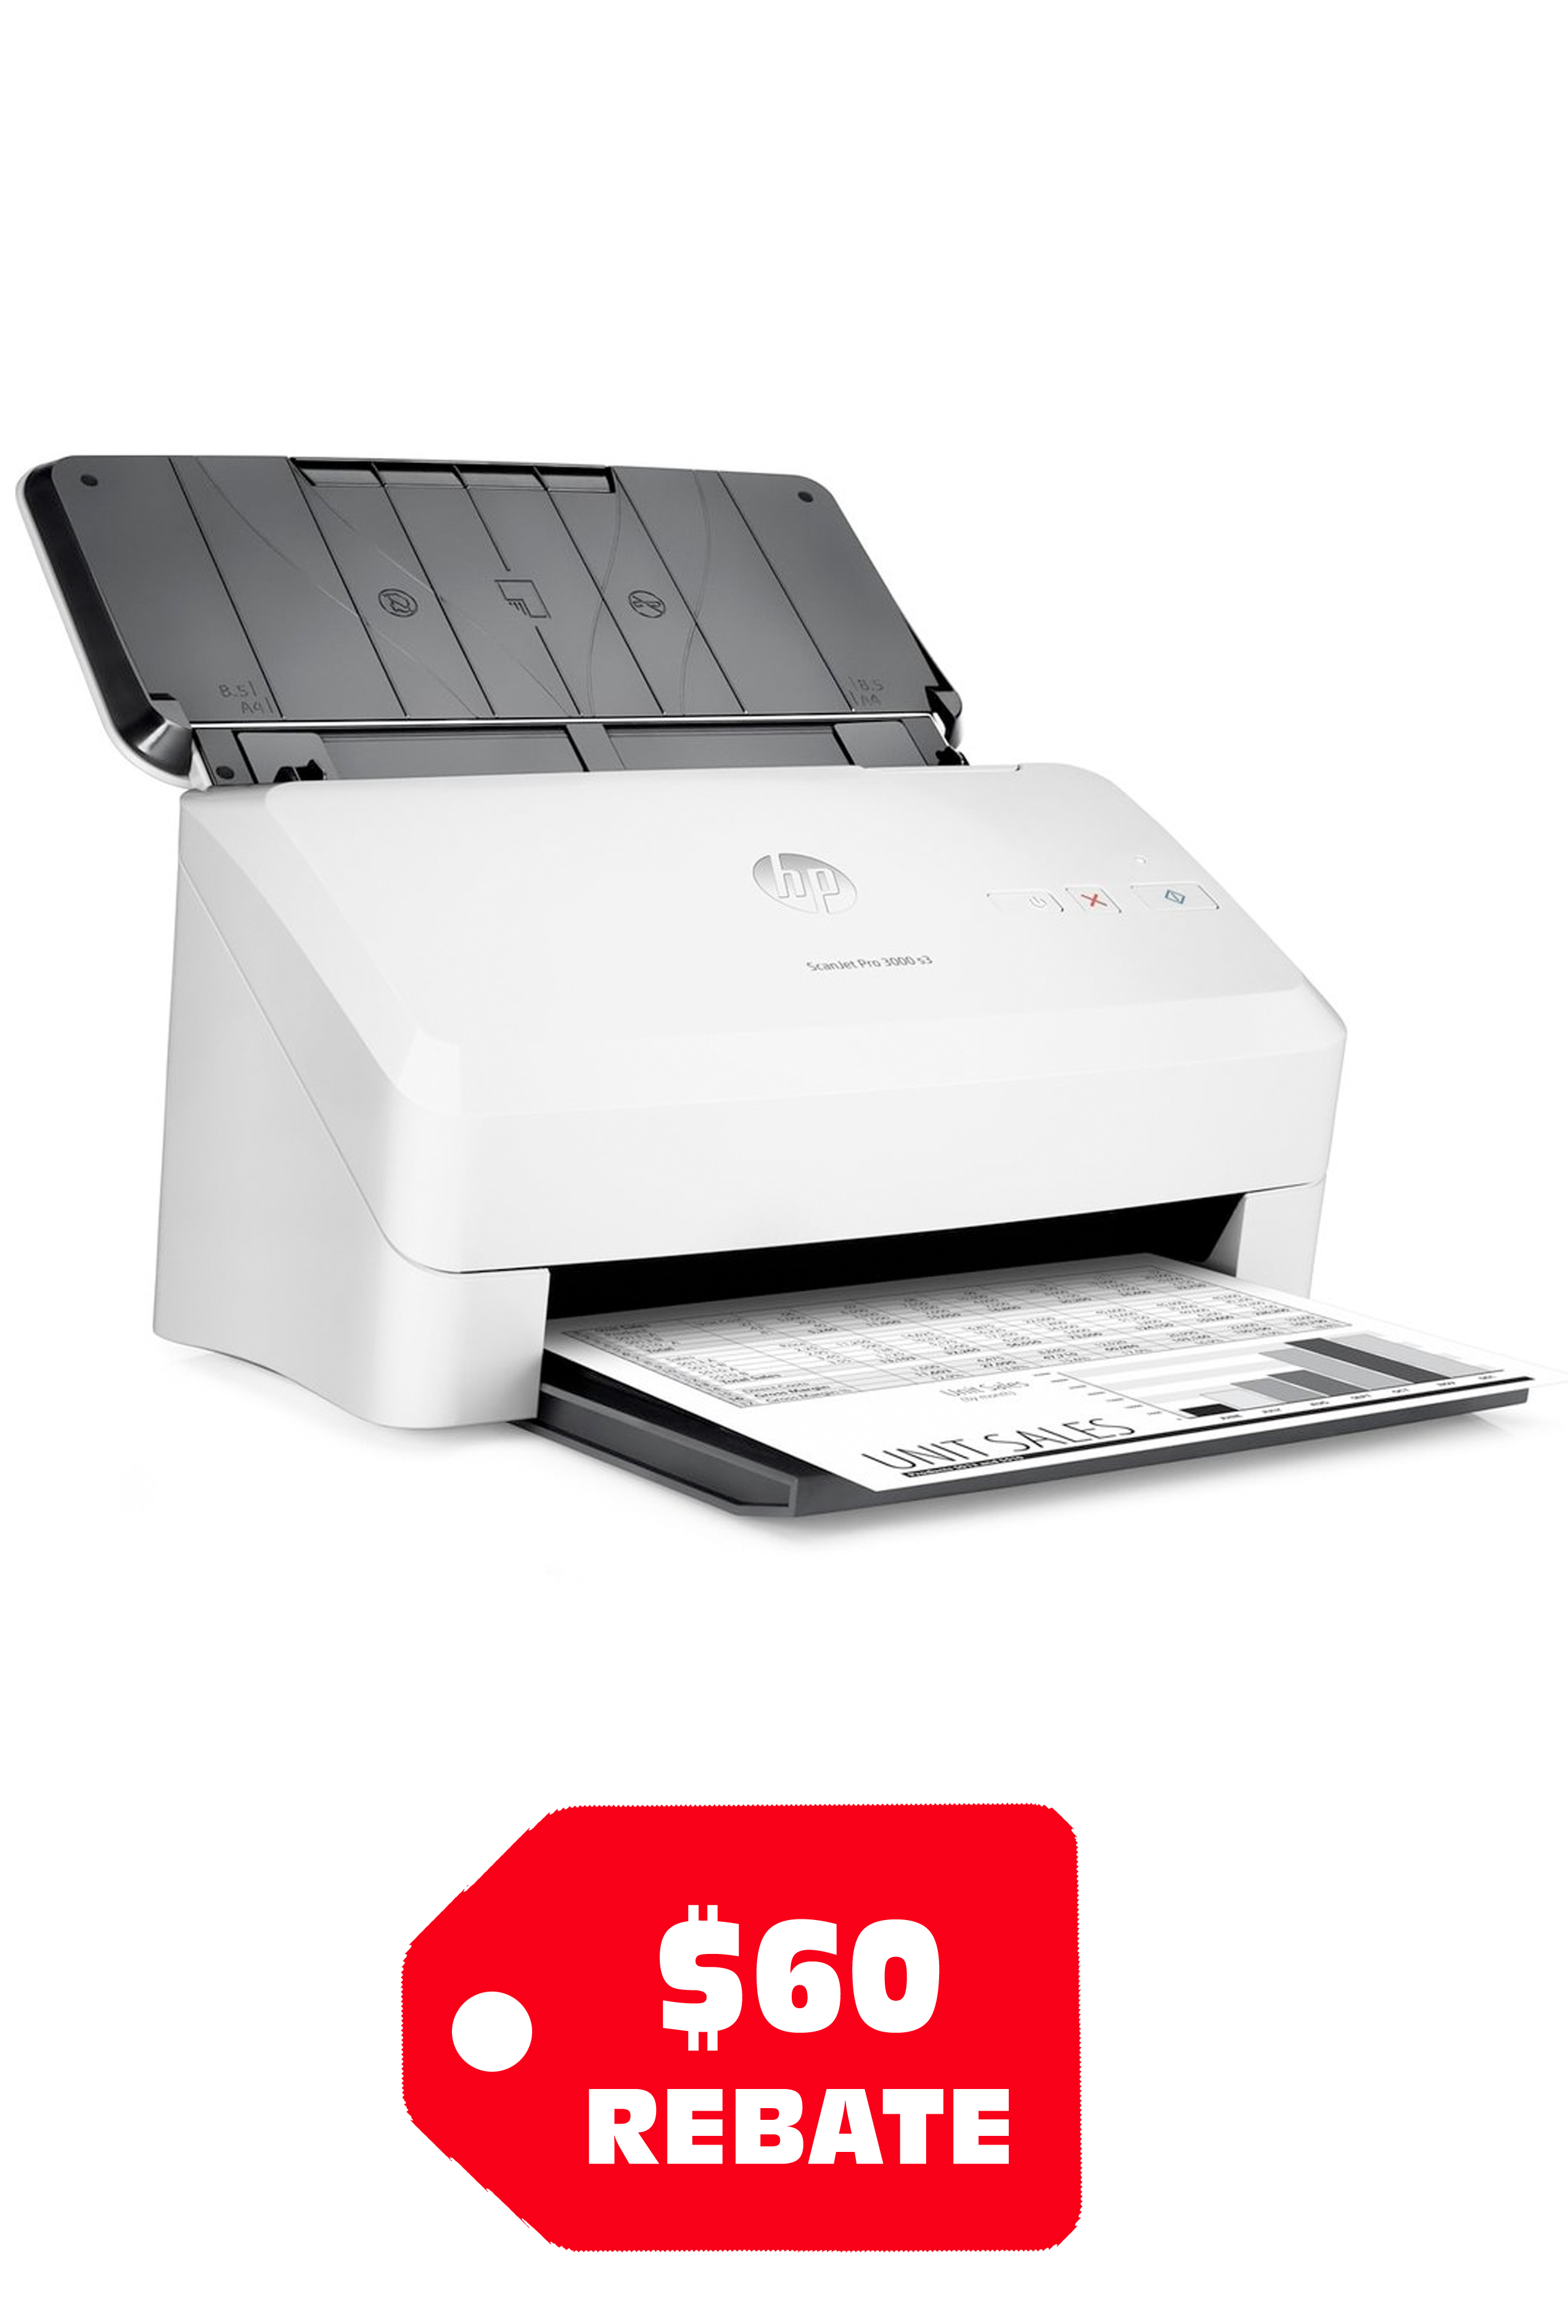 download hp scanjet pro 3000 s2 software